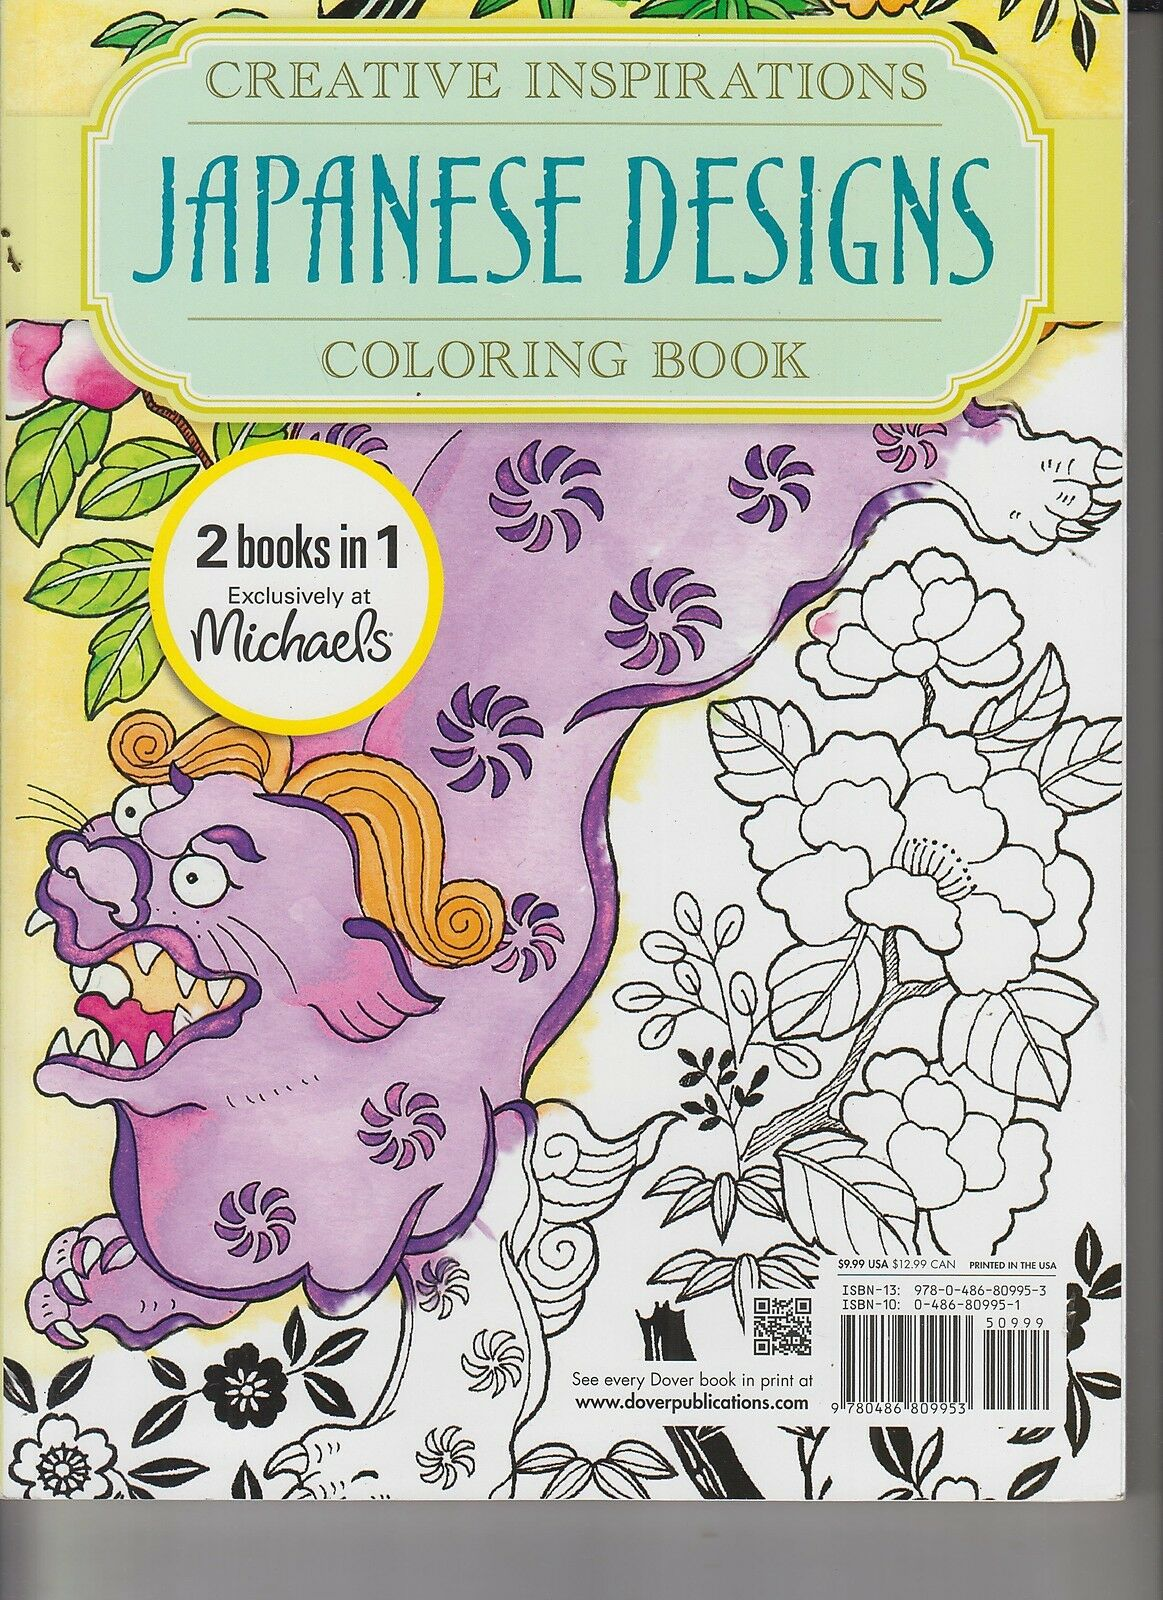 Creative Inspirations Japanese Designs Coloring Book No Pages Written Colored On